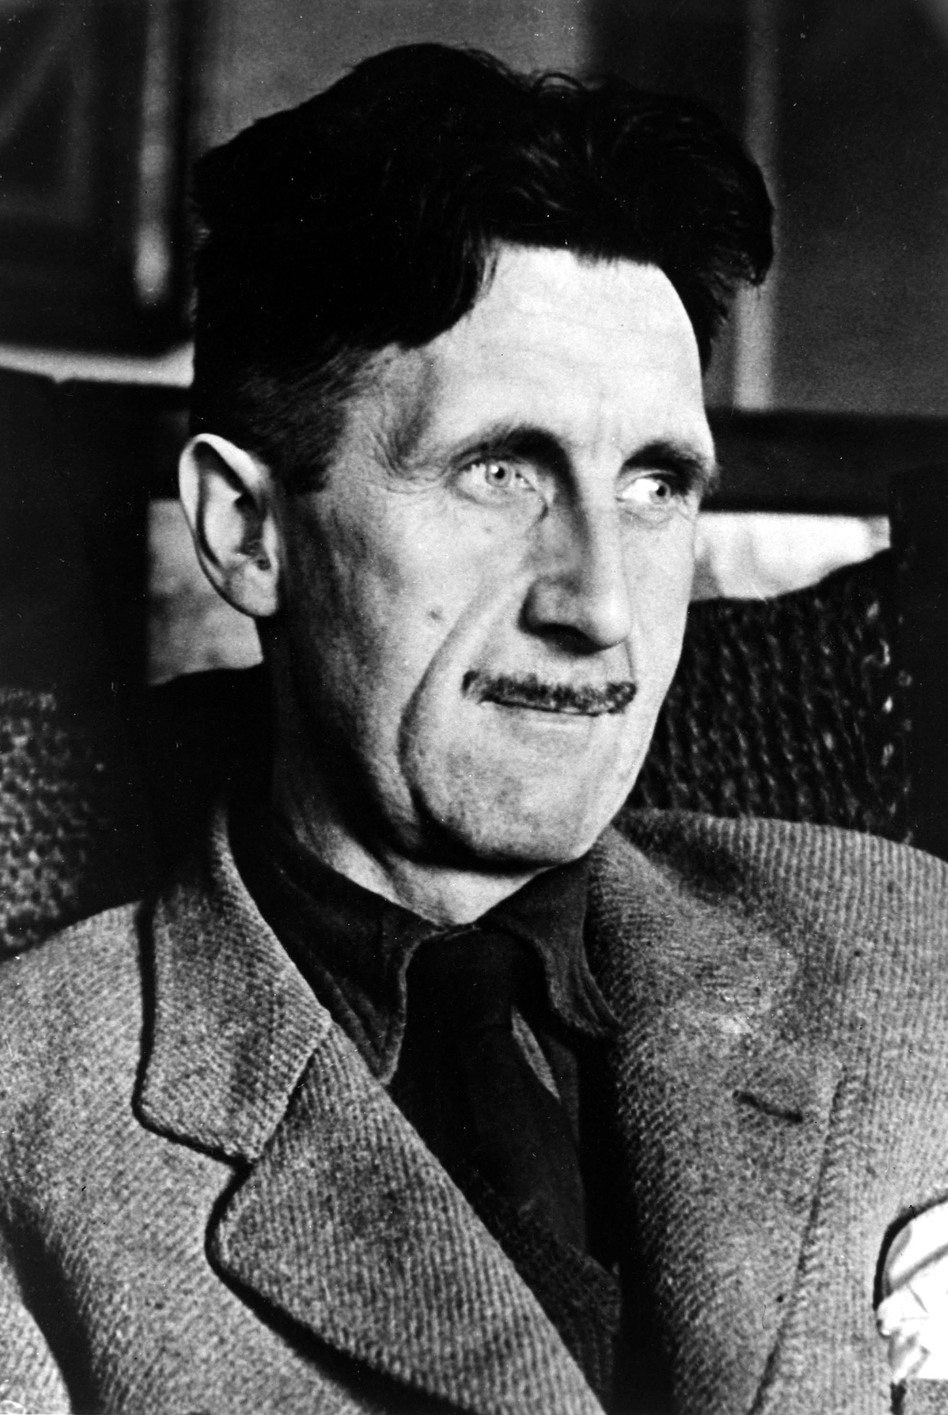 In his novel Nineteen Eighty-Four, British author George Orwell warned of the dangers of bureaucratic power run amok — but he also recognized that the protection of the state, while intrusive, is necessary.